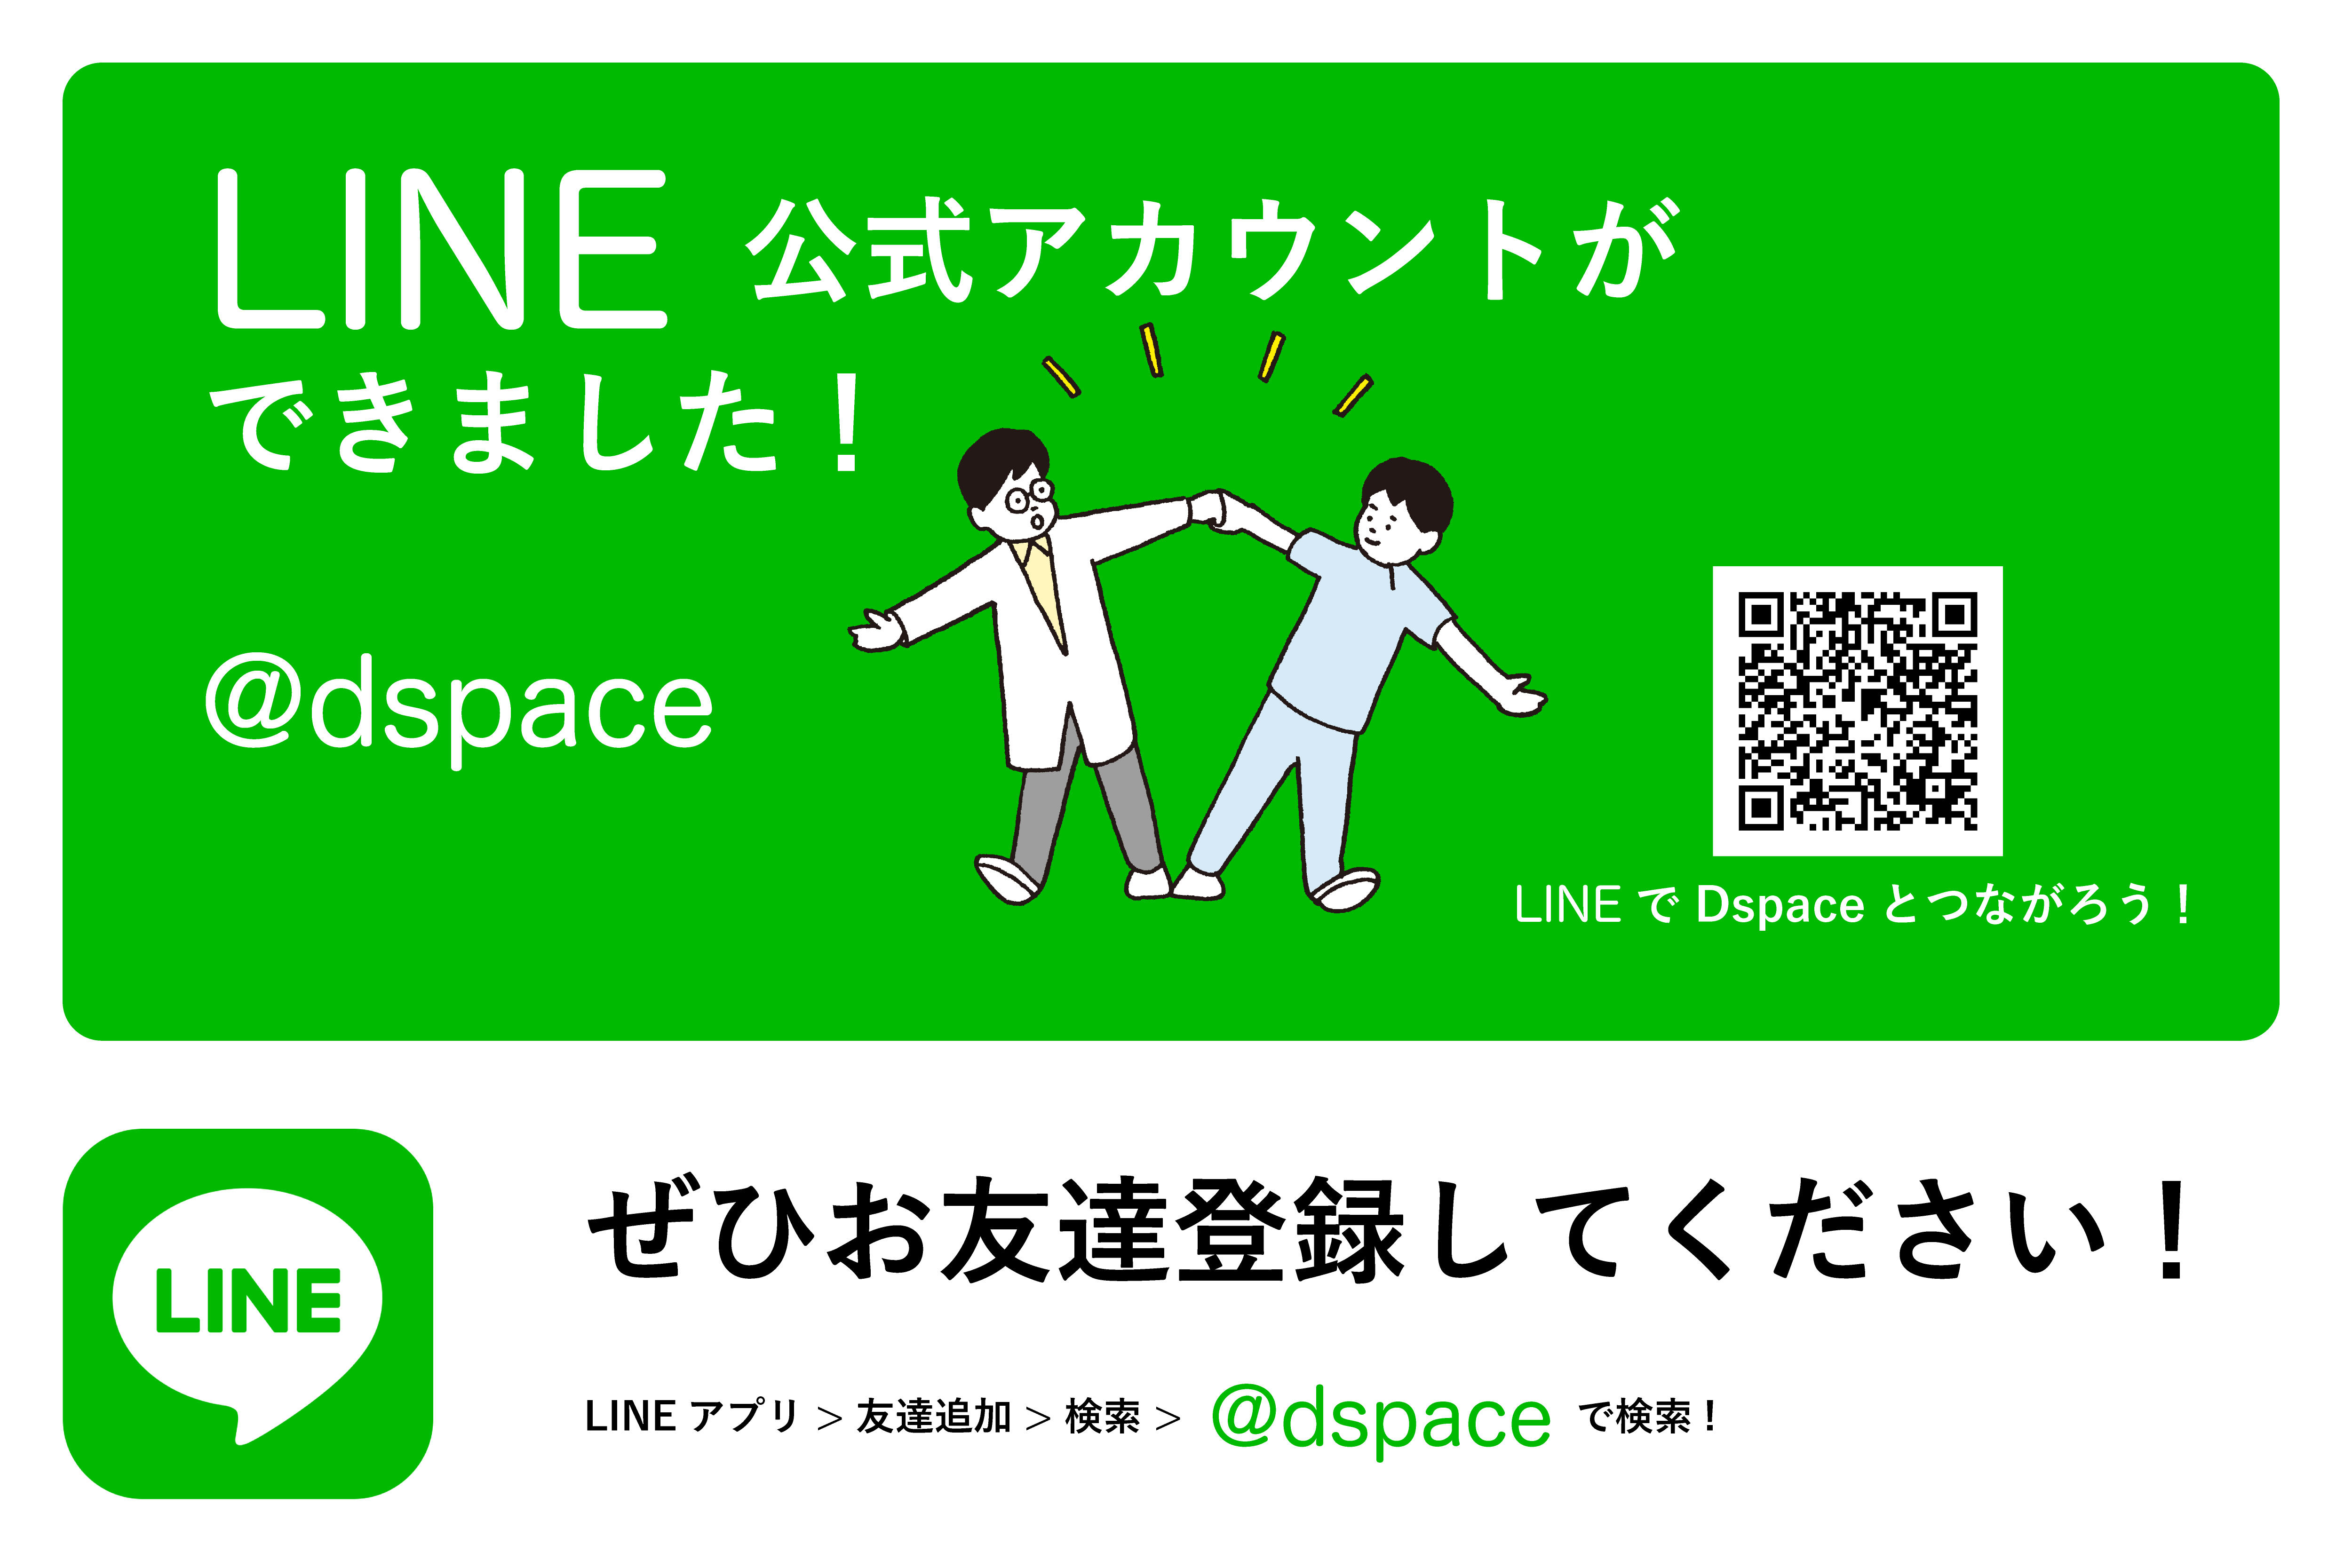 【Dspace LINE公式アカウント】のお知らせ アカウントID @dspace